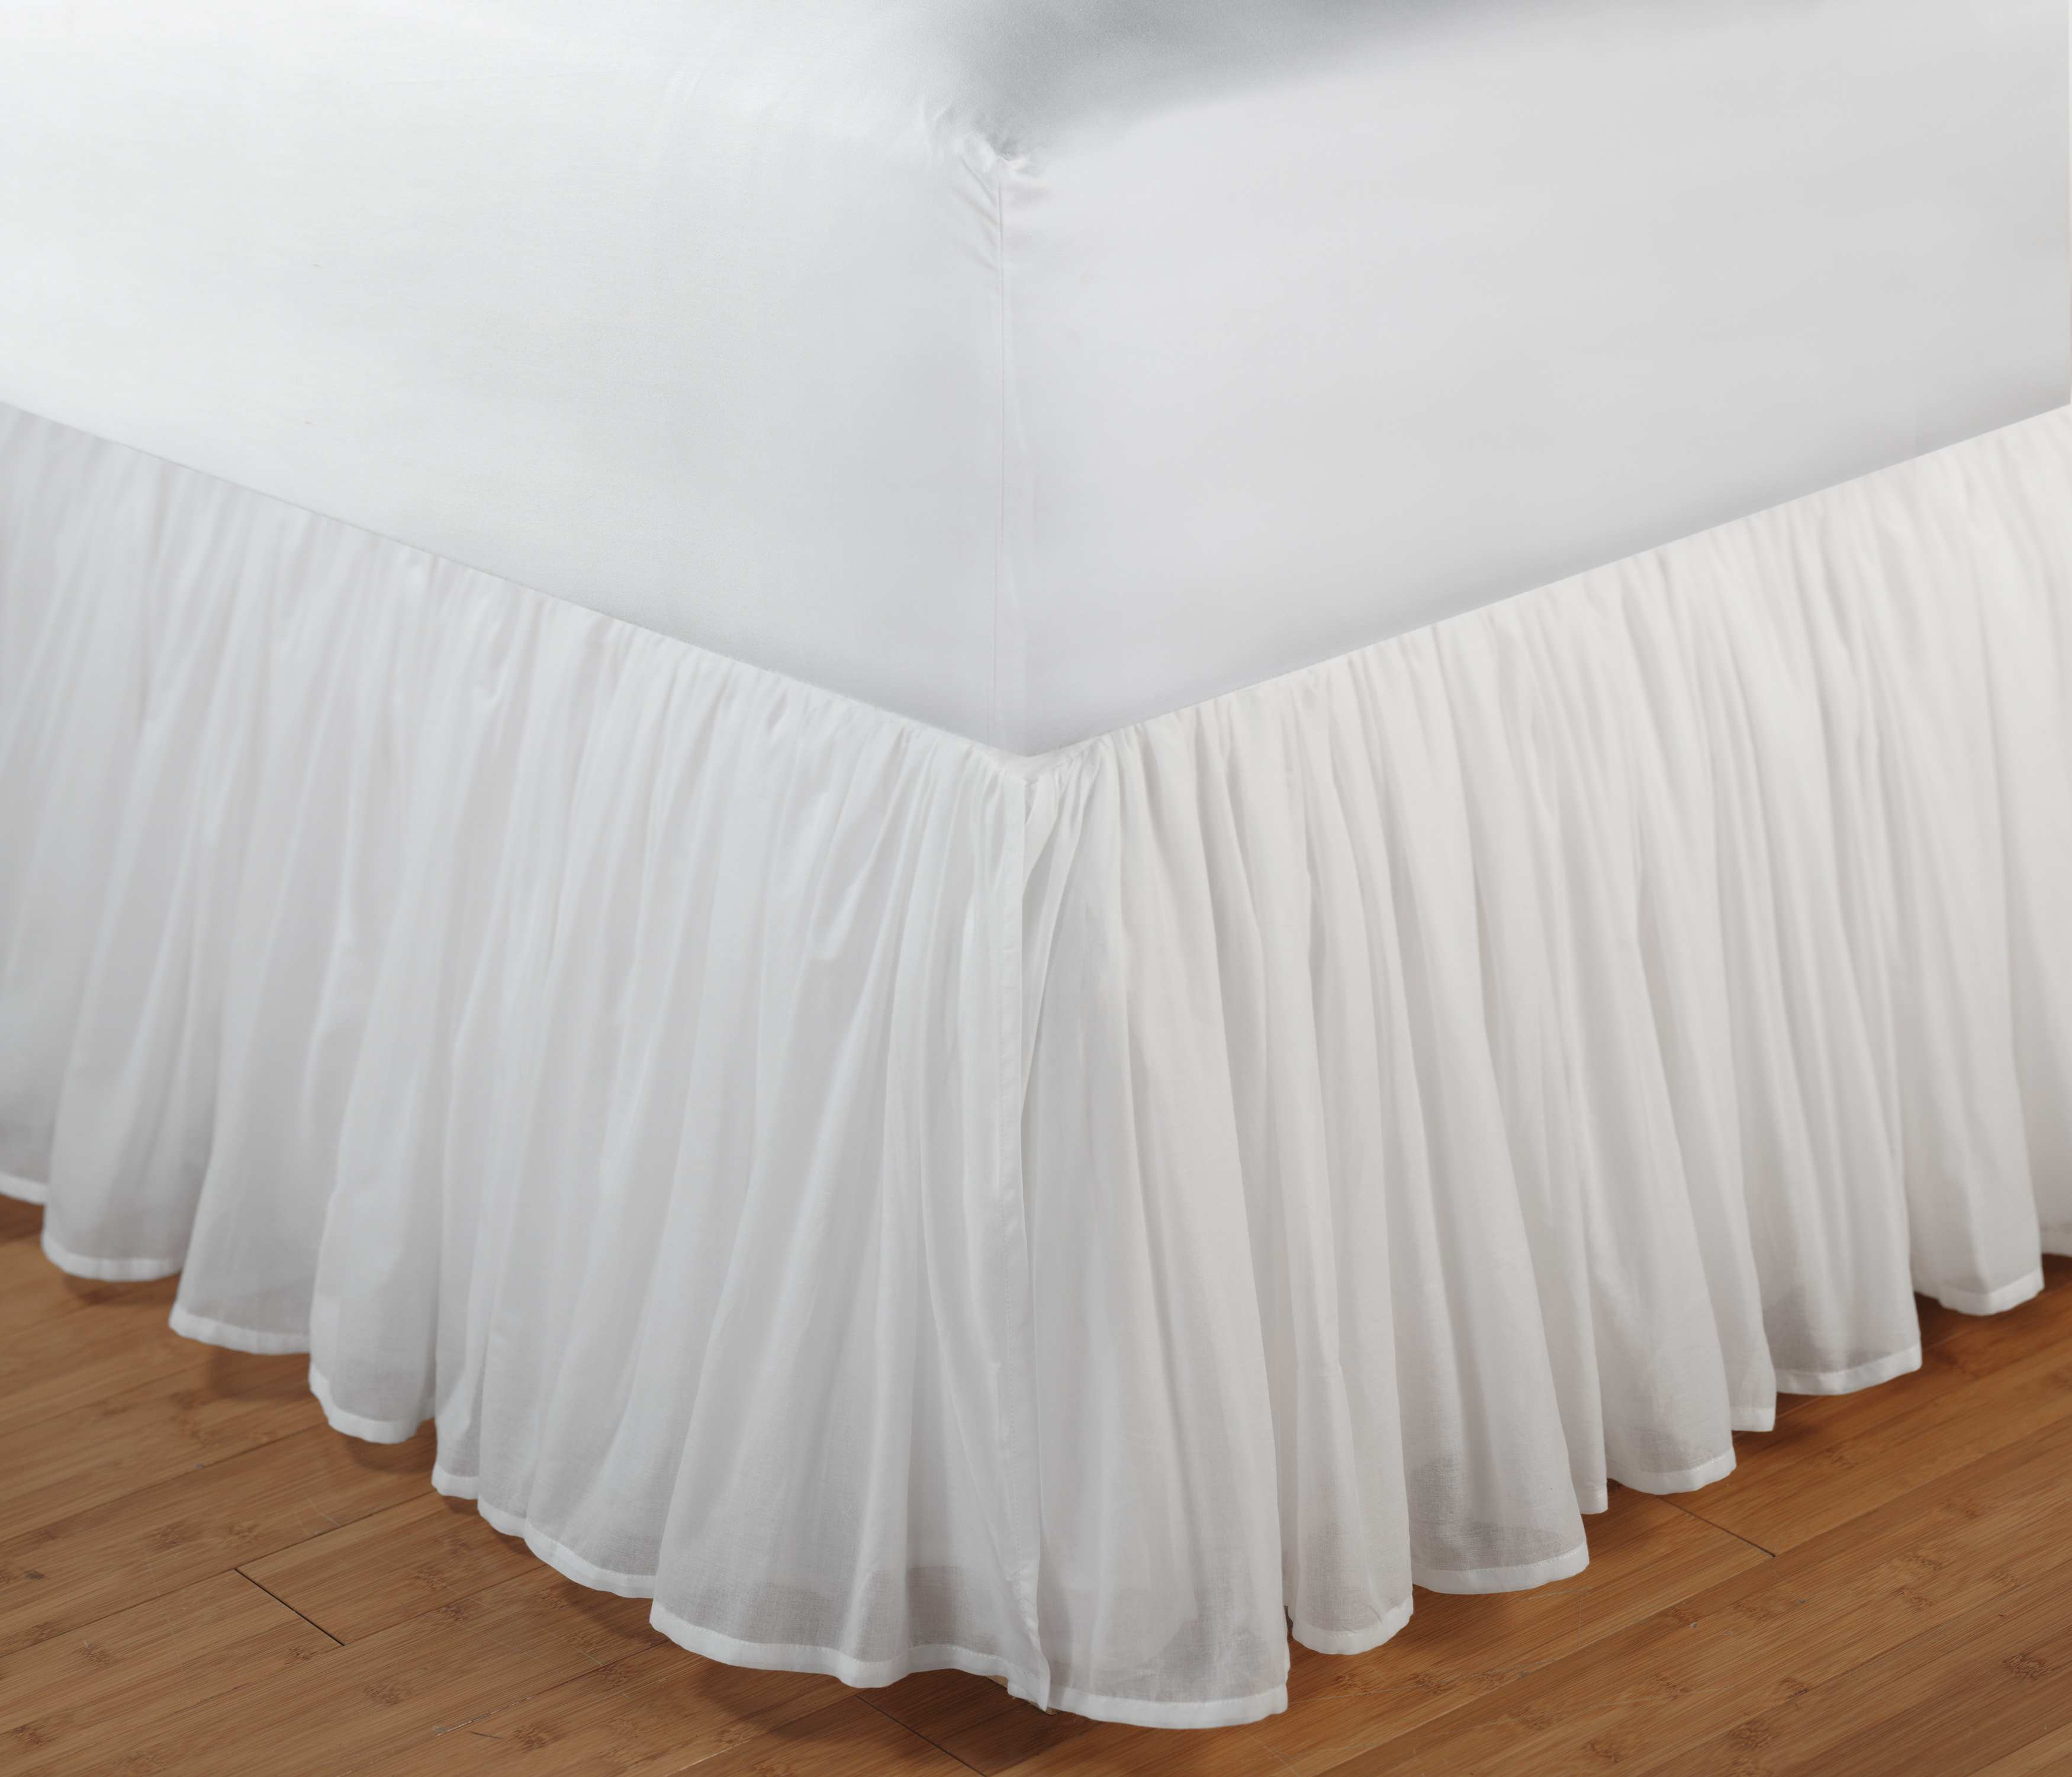 Cotton Voile White Bed Skirt 15 King